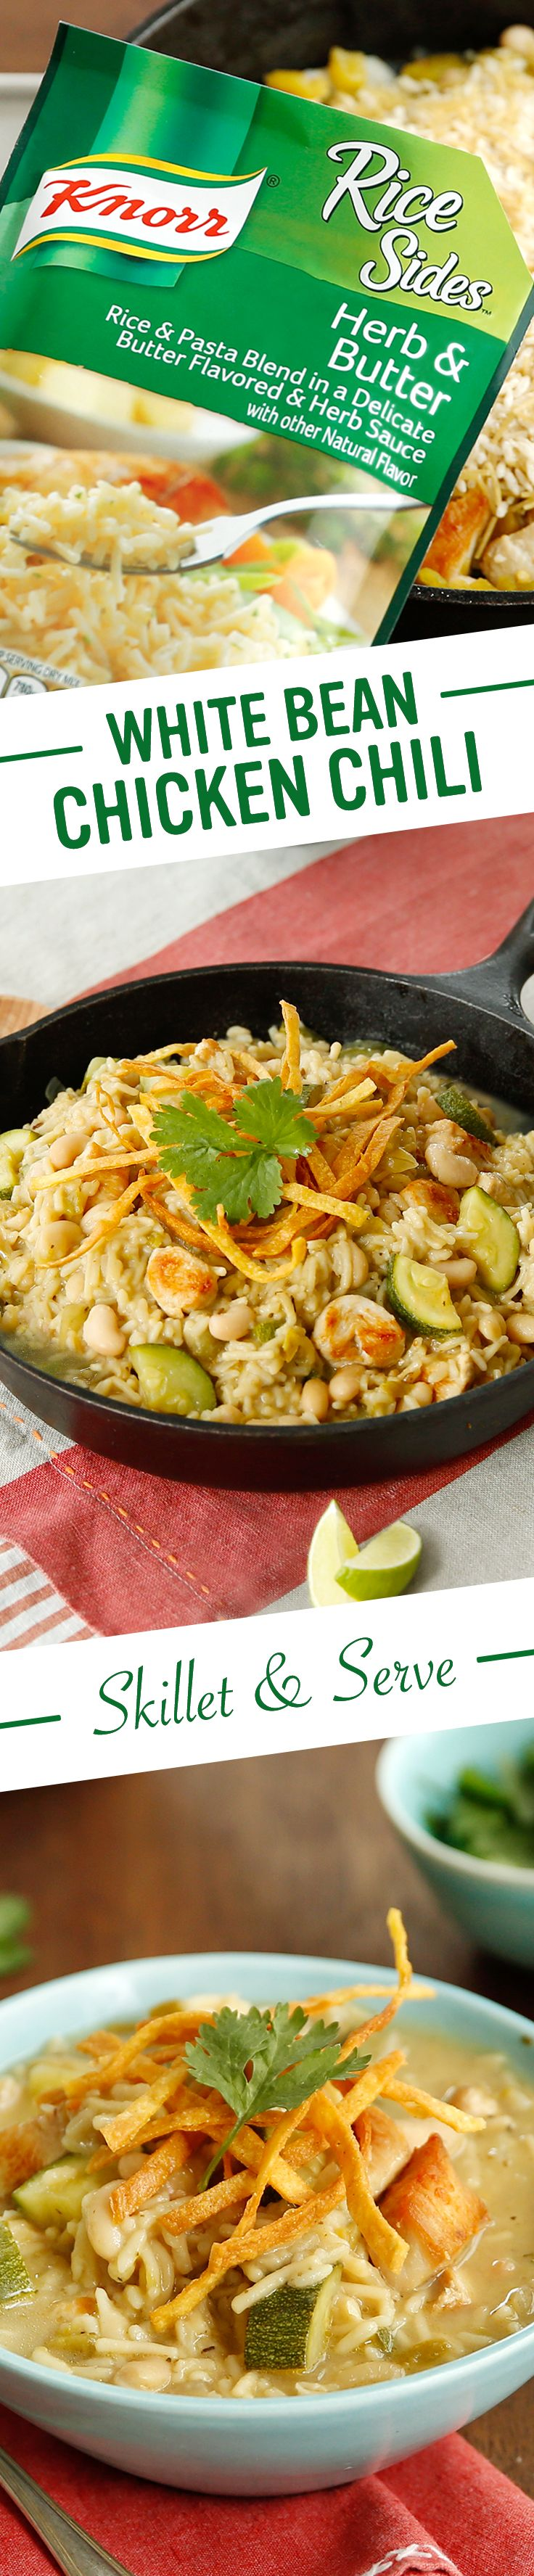 Here's an idea for sharing flavors of the Southwest w/ your family. Knorr's White Bean Chicken Chili includes creamy beans, fresh zucchini, & zesty chilies. (And it won't make your mouth as hot as the desert!) Follow this easy recipe: 1. Cook chicken. Stir in ground cumin 2. Add canned chilies to cannellini beans, simmer Knorr® Rice Sides™ - Herb & Butter, & mix zucchini w/ lime juice 3. Serve w/ lime wedges, chopped fresh cilantro, & tortilla strips/chips. Enjoy!